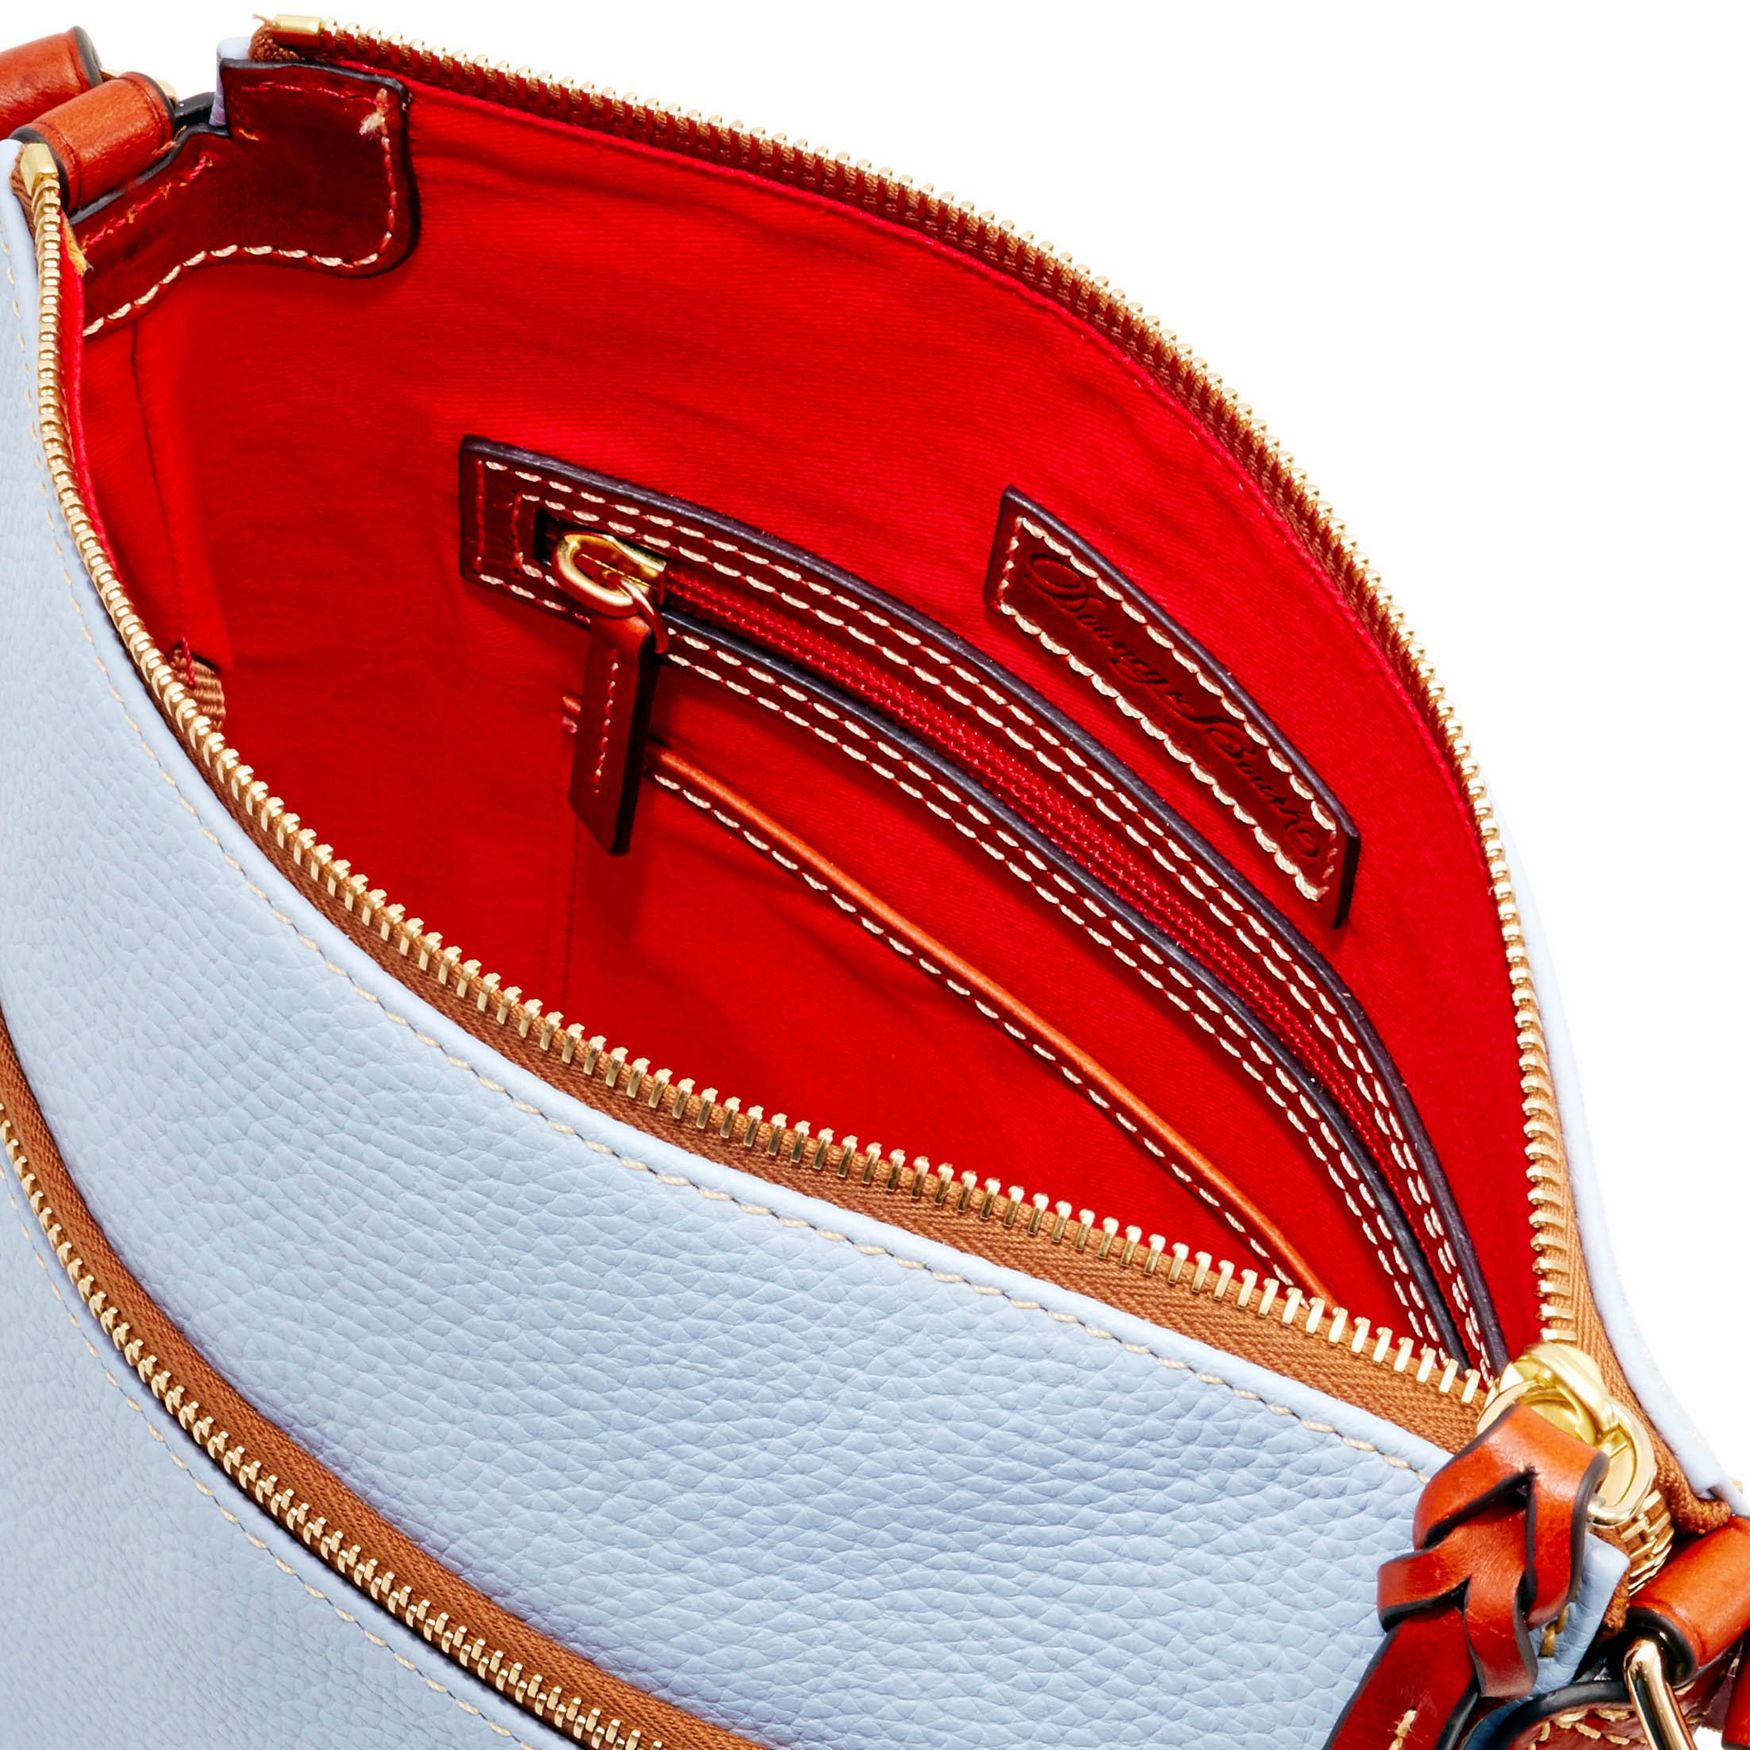 Dooney-amp-Bourke-Pebble-Grain-Crossbody-Medium-Wristlet-Shoulder-Bag thumbnail 21